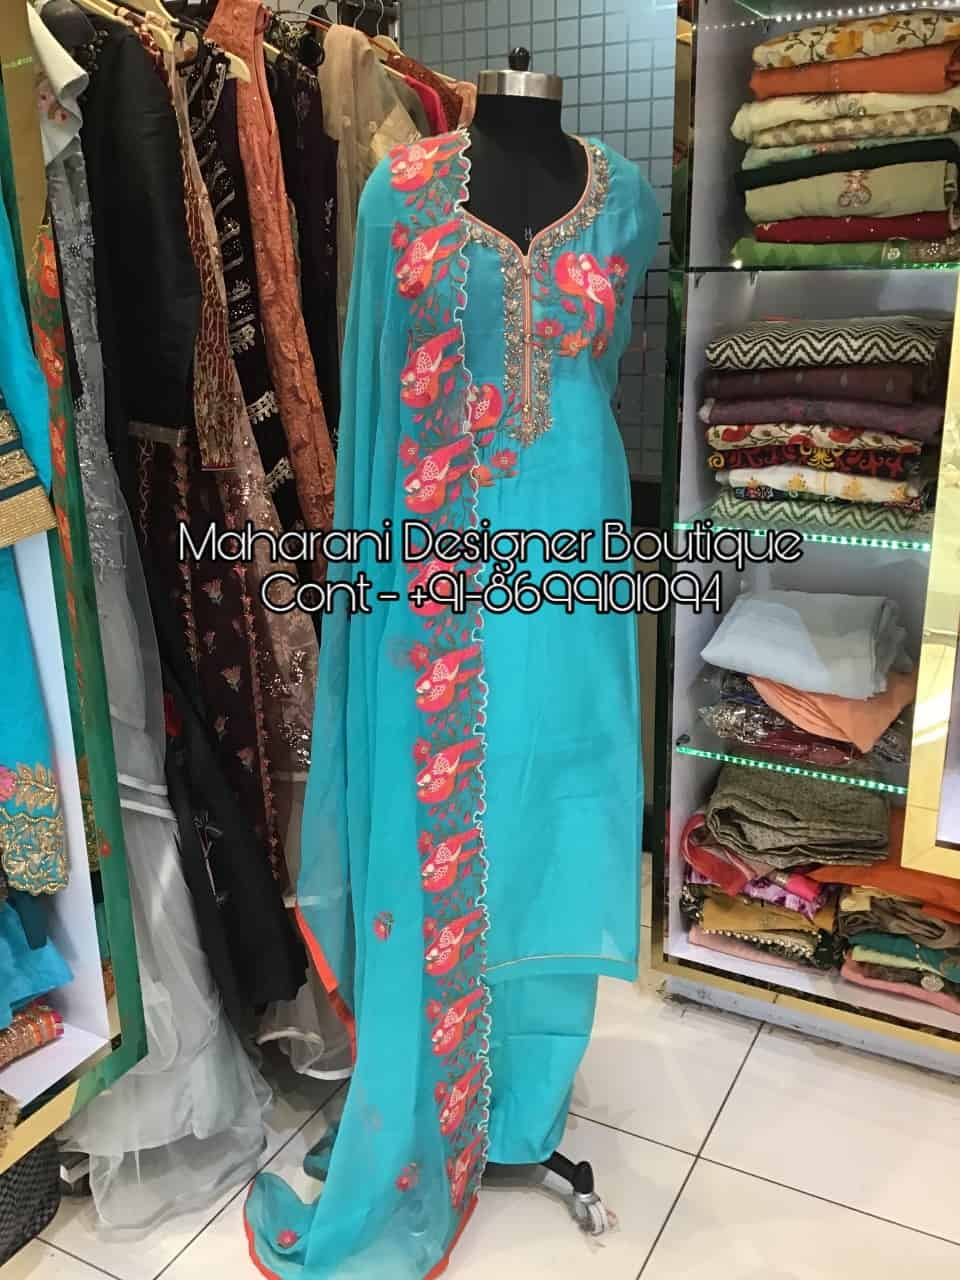 588f8871a7 dresses in punjab pathankot, boutique of pathankot, latest punjabi boutique  suits on facebook,